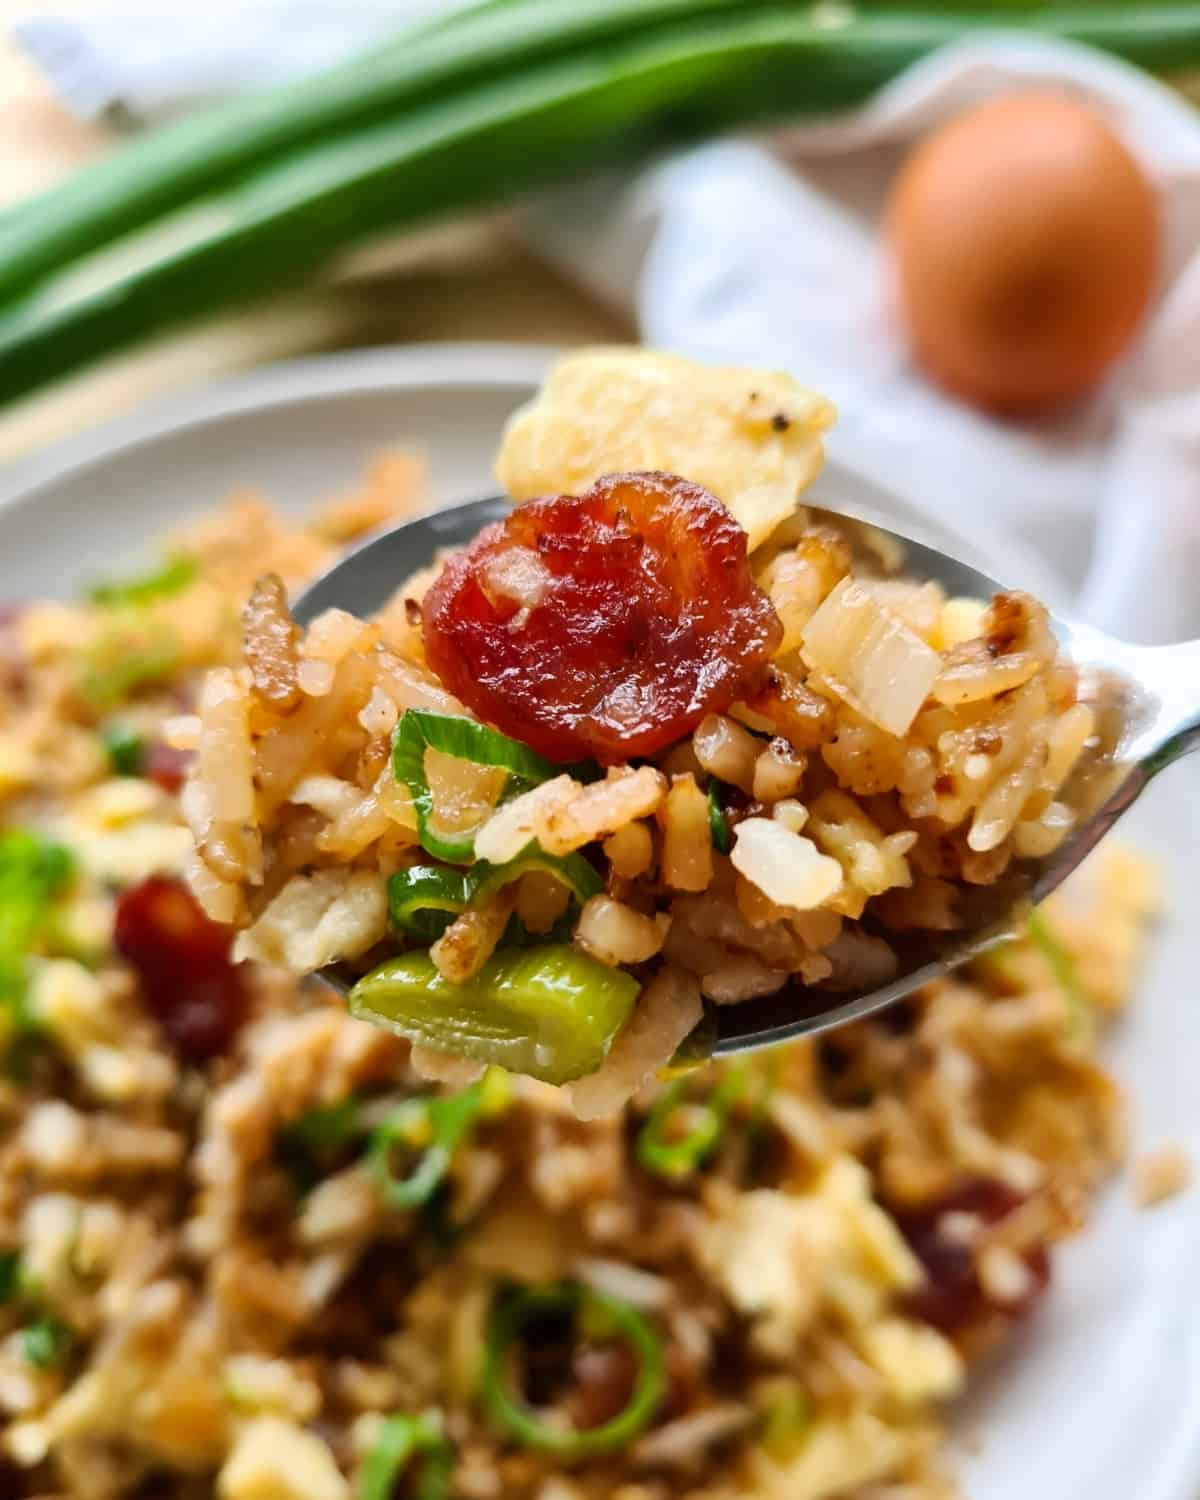 Close up image of a spoonful of Chinese sausage fried rice. A full plate in the background